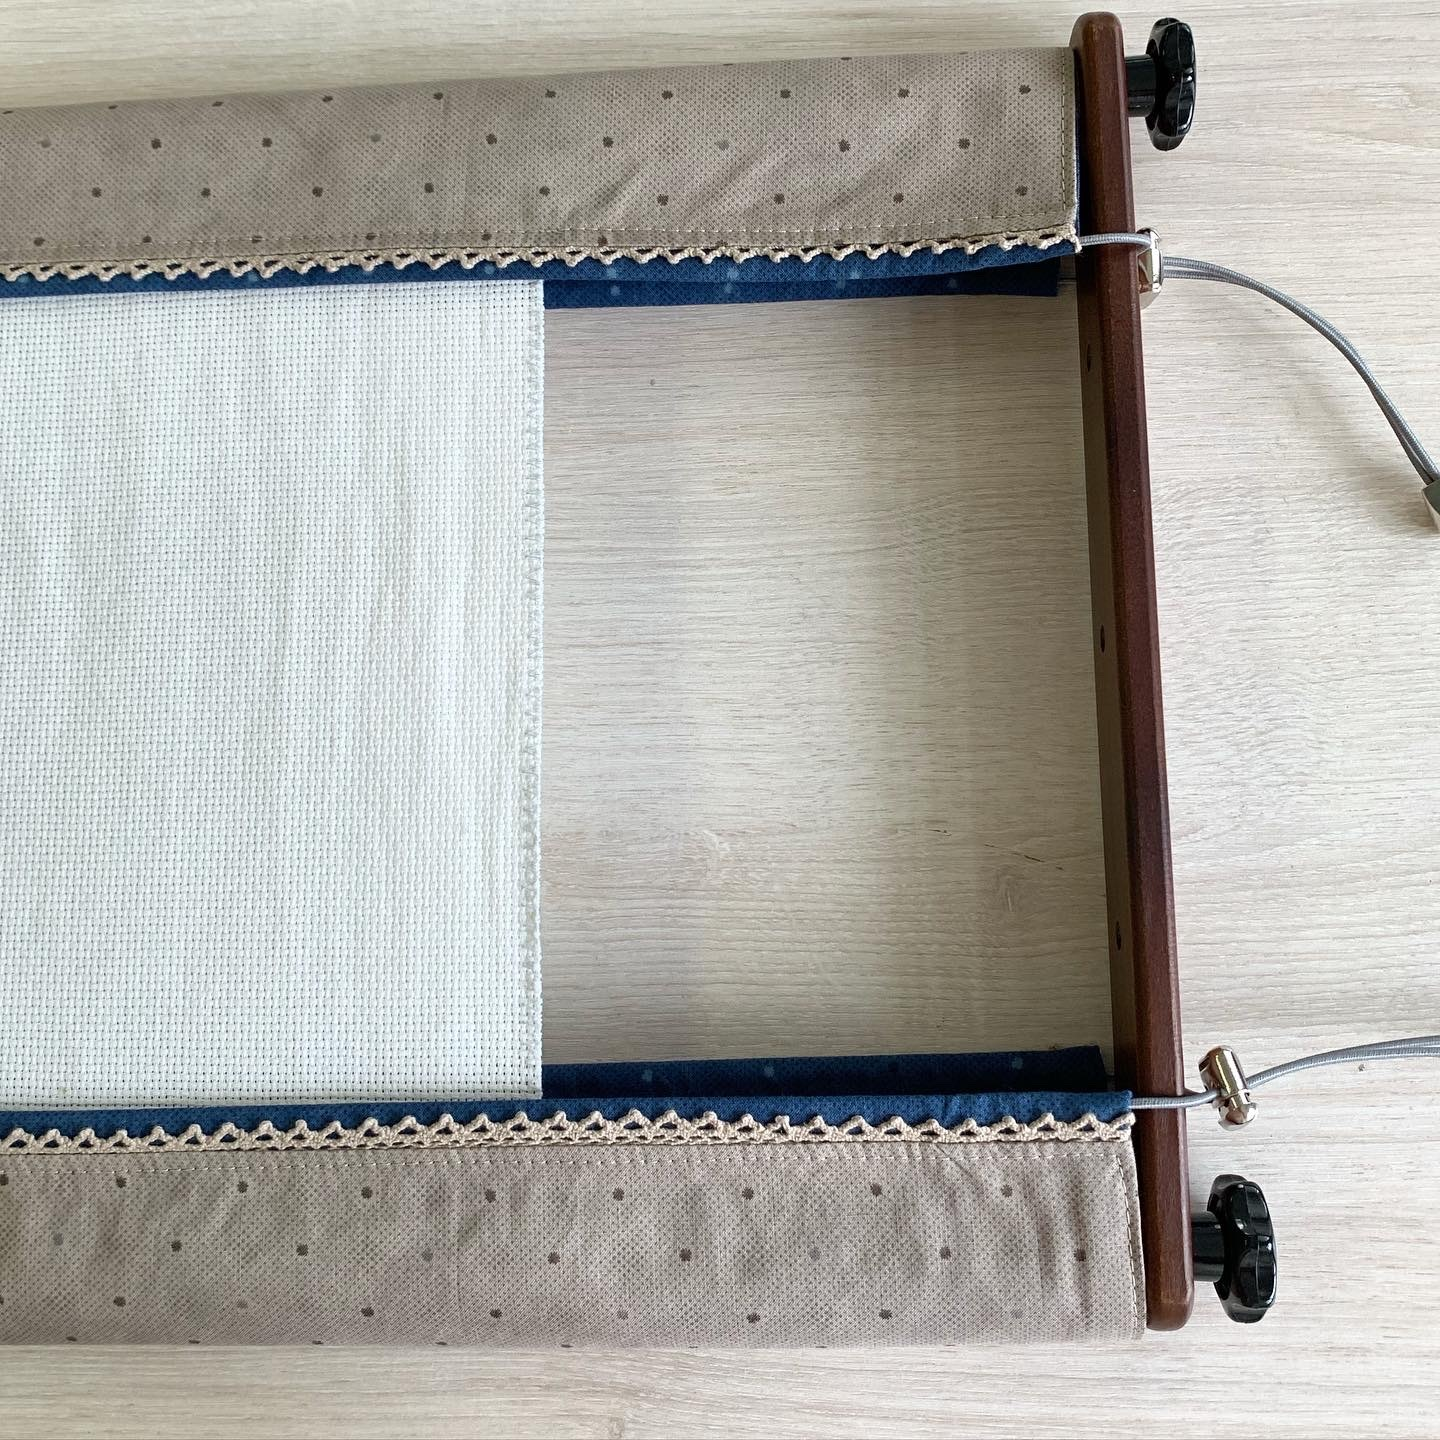 Protective covers for frames 90 cm